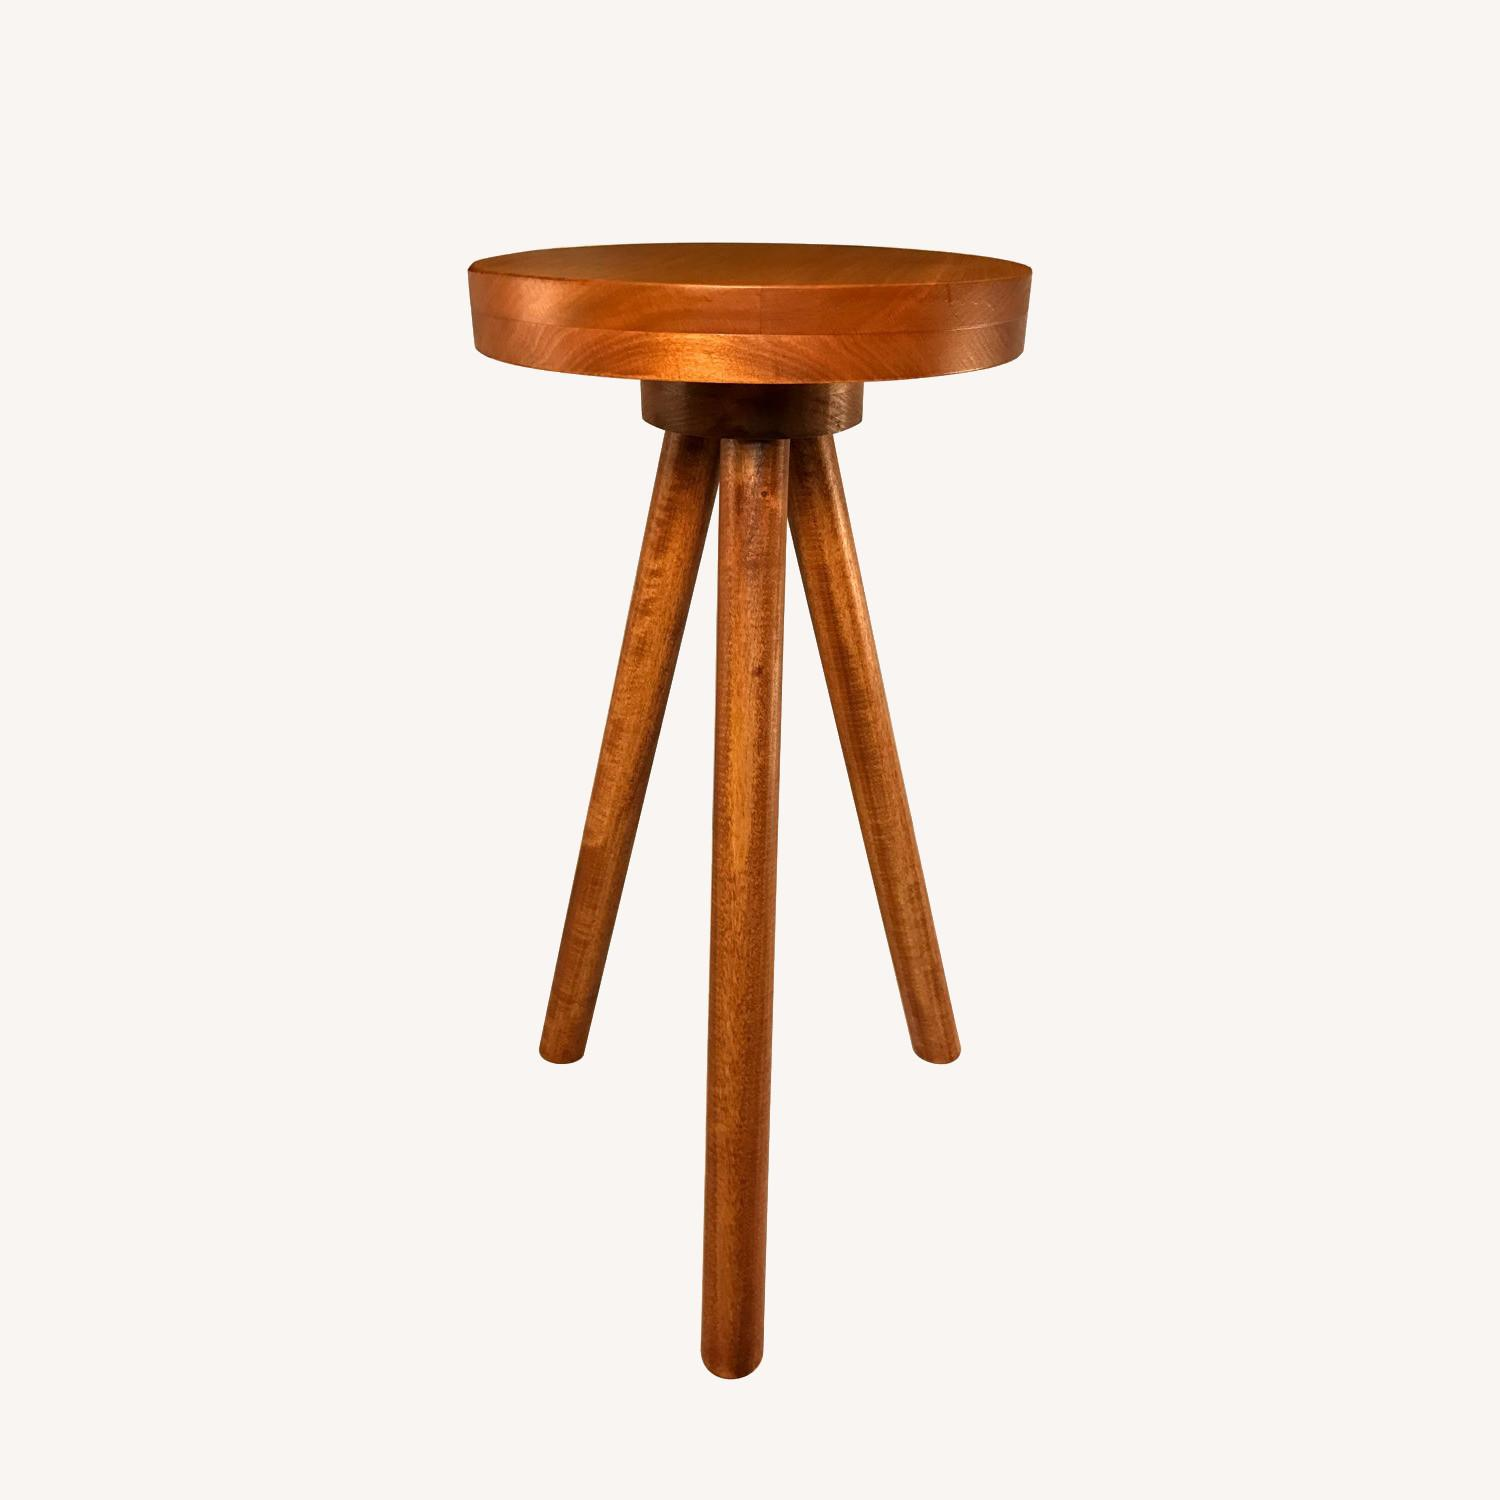 Modern Wood Round Side Table Pedestal Plant Stand